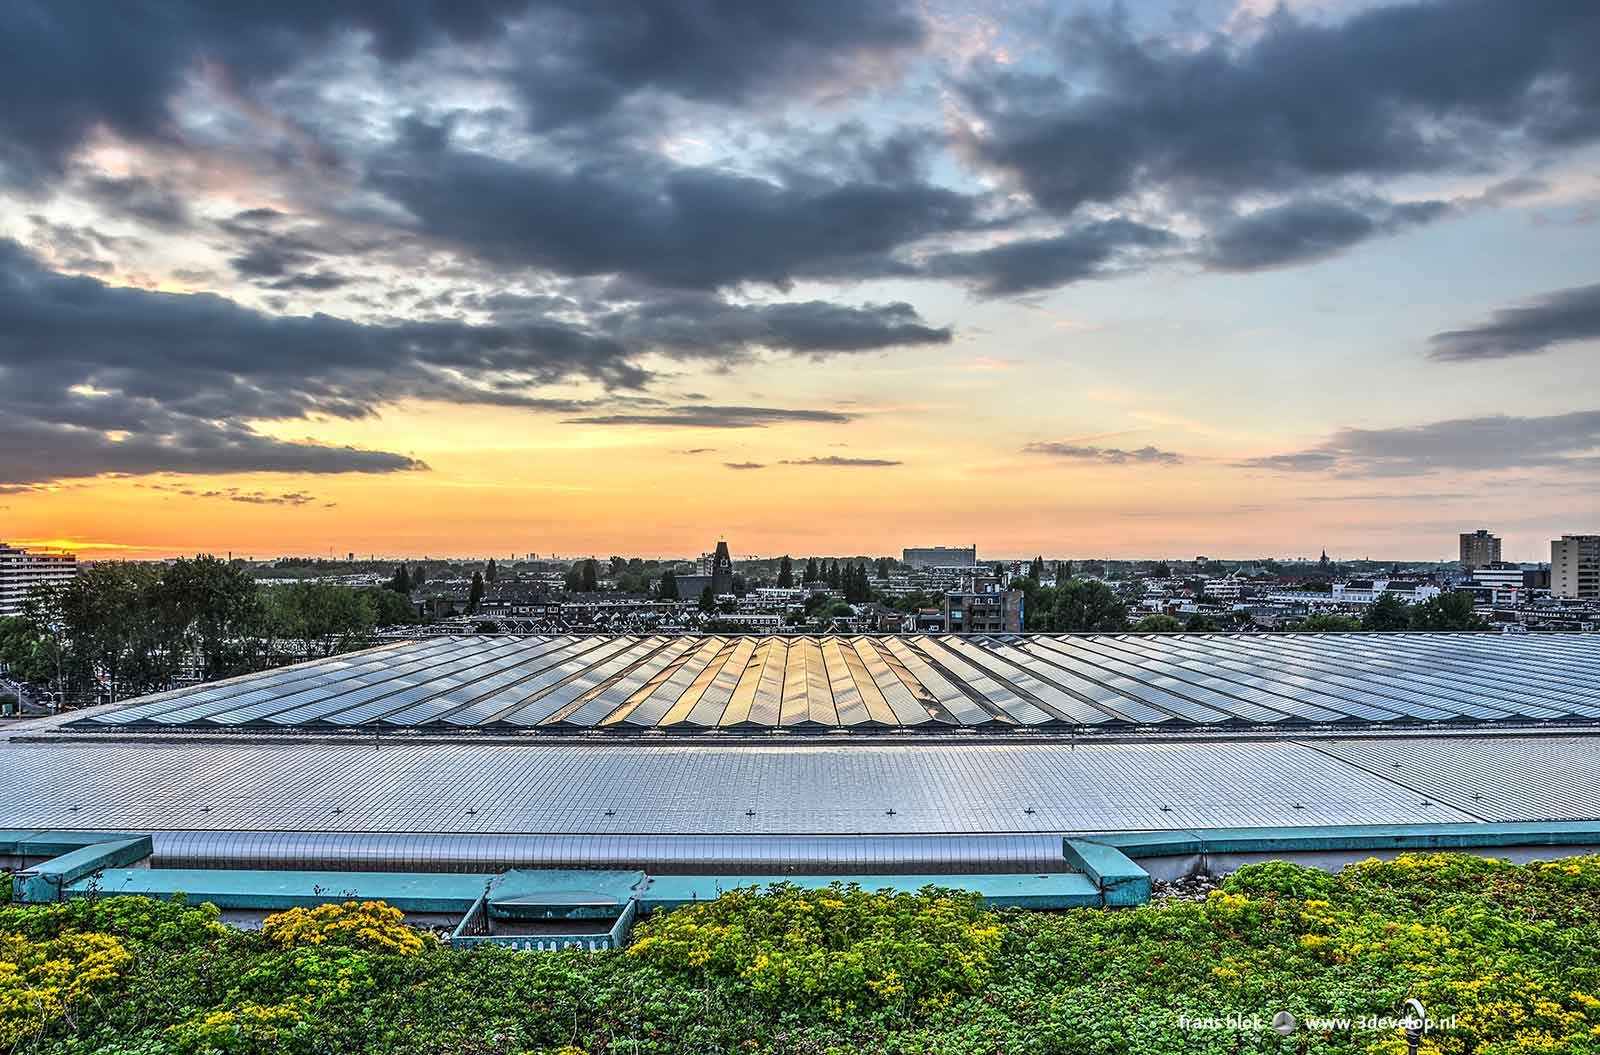 The roof of the Central Station in Rotterdam, stainless steel and glass, as seen from the roof of the Groothandelsgebouw at sunset, with a sedum field in the foreground.